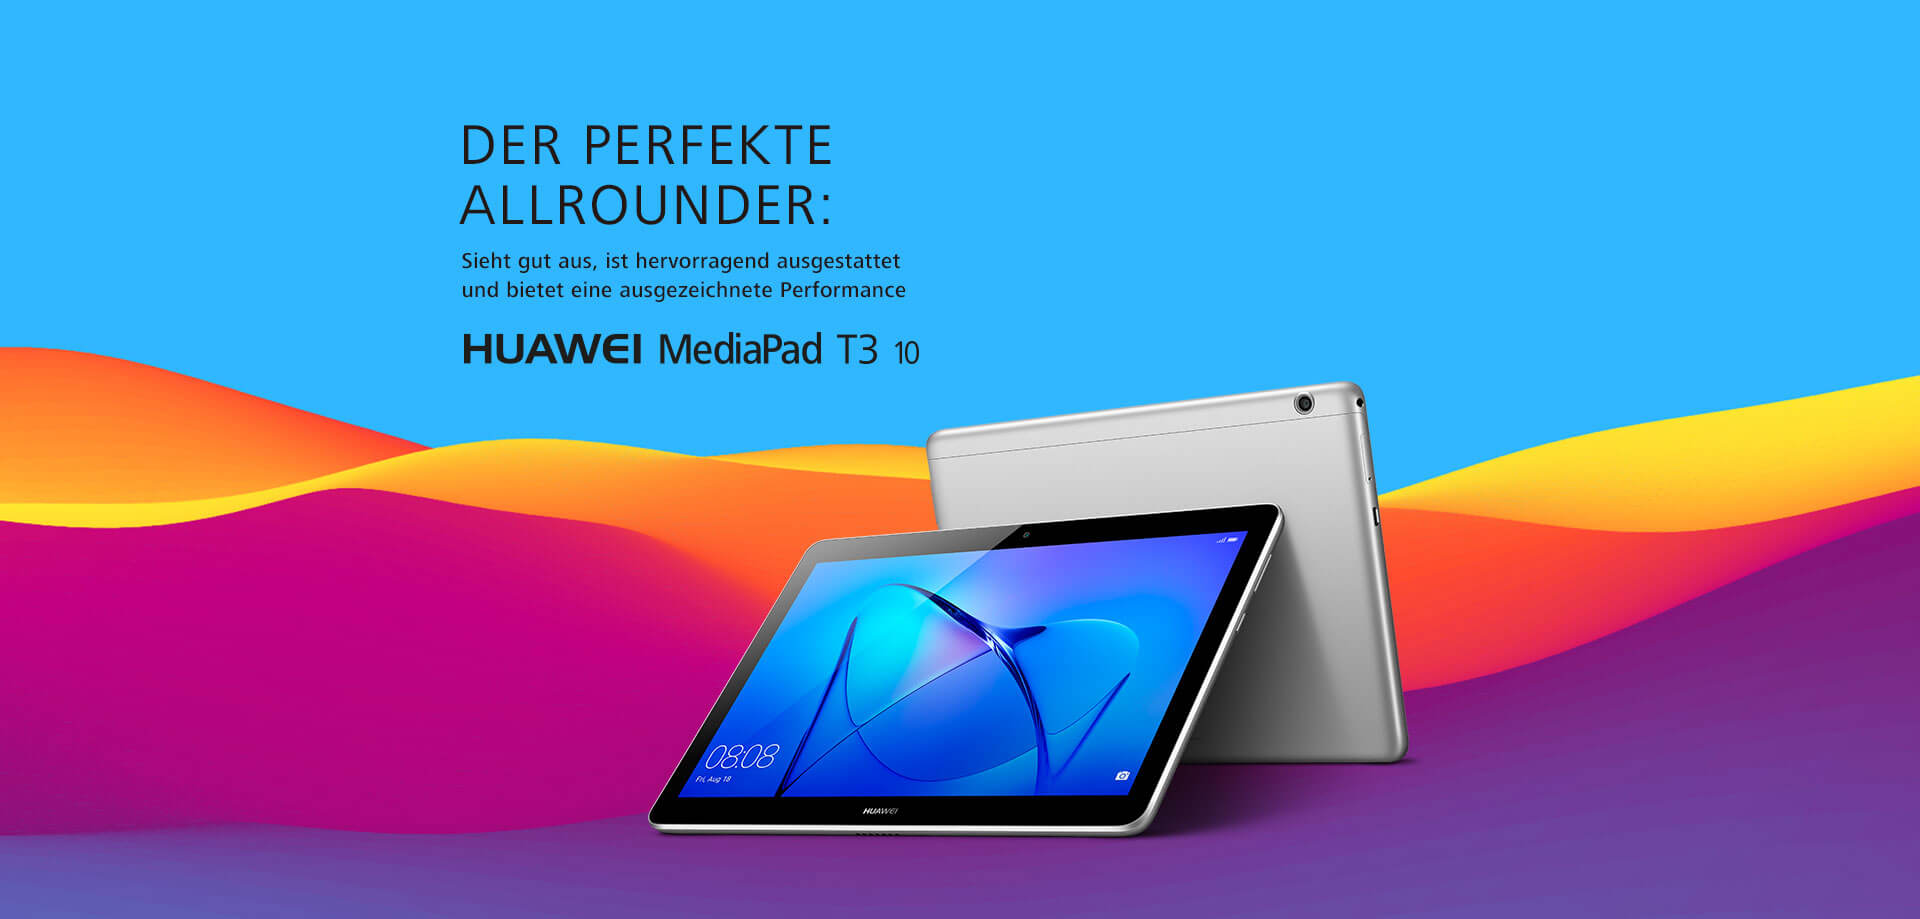 Huawei MediaPad T3 10 Android Tablet